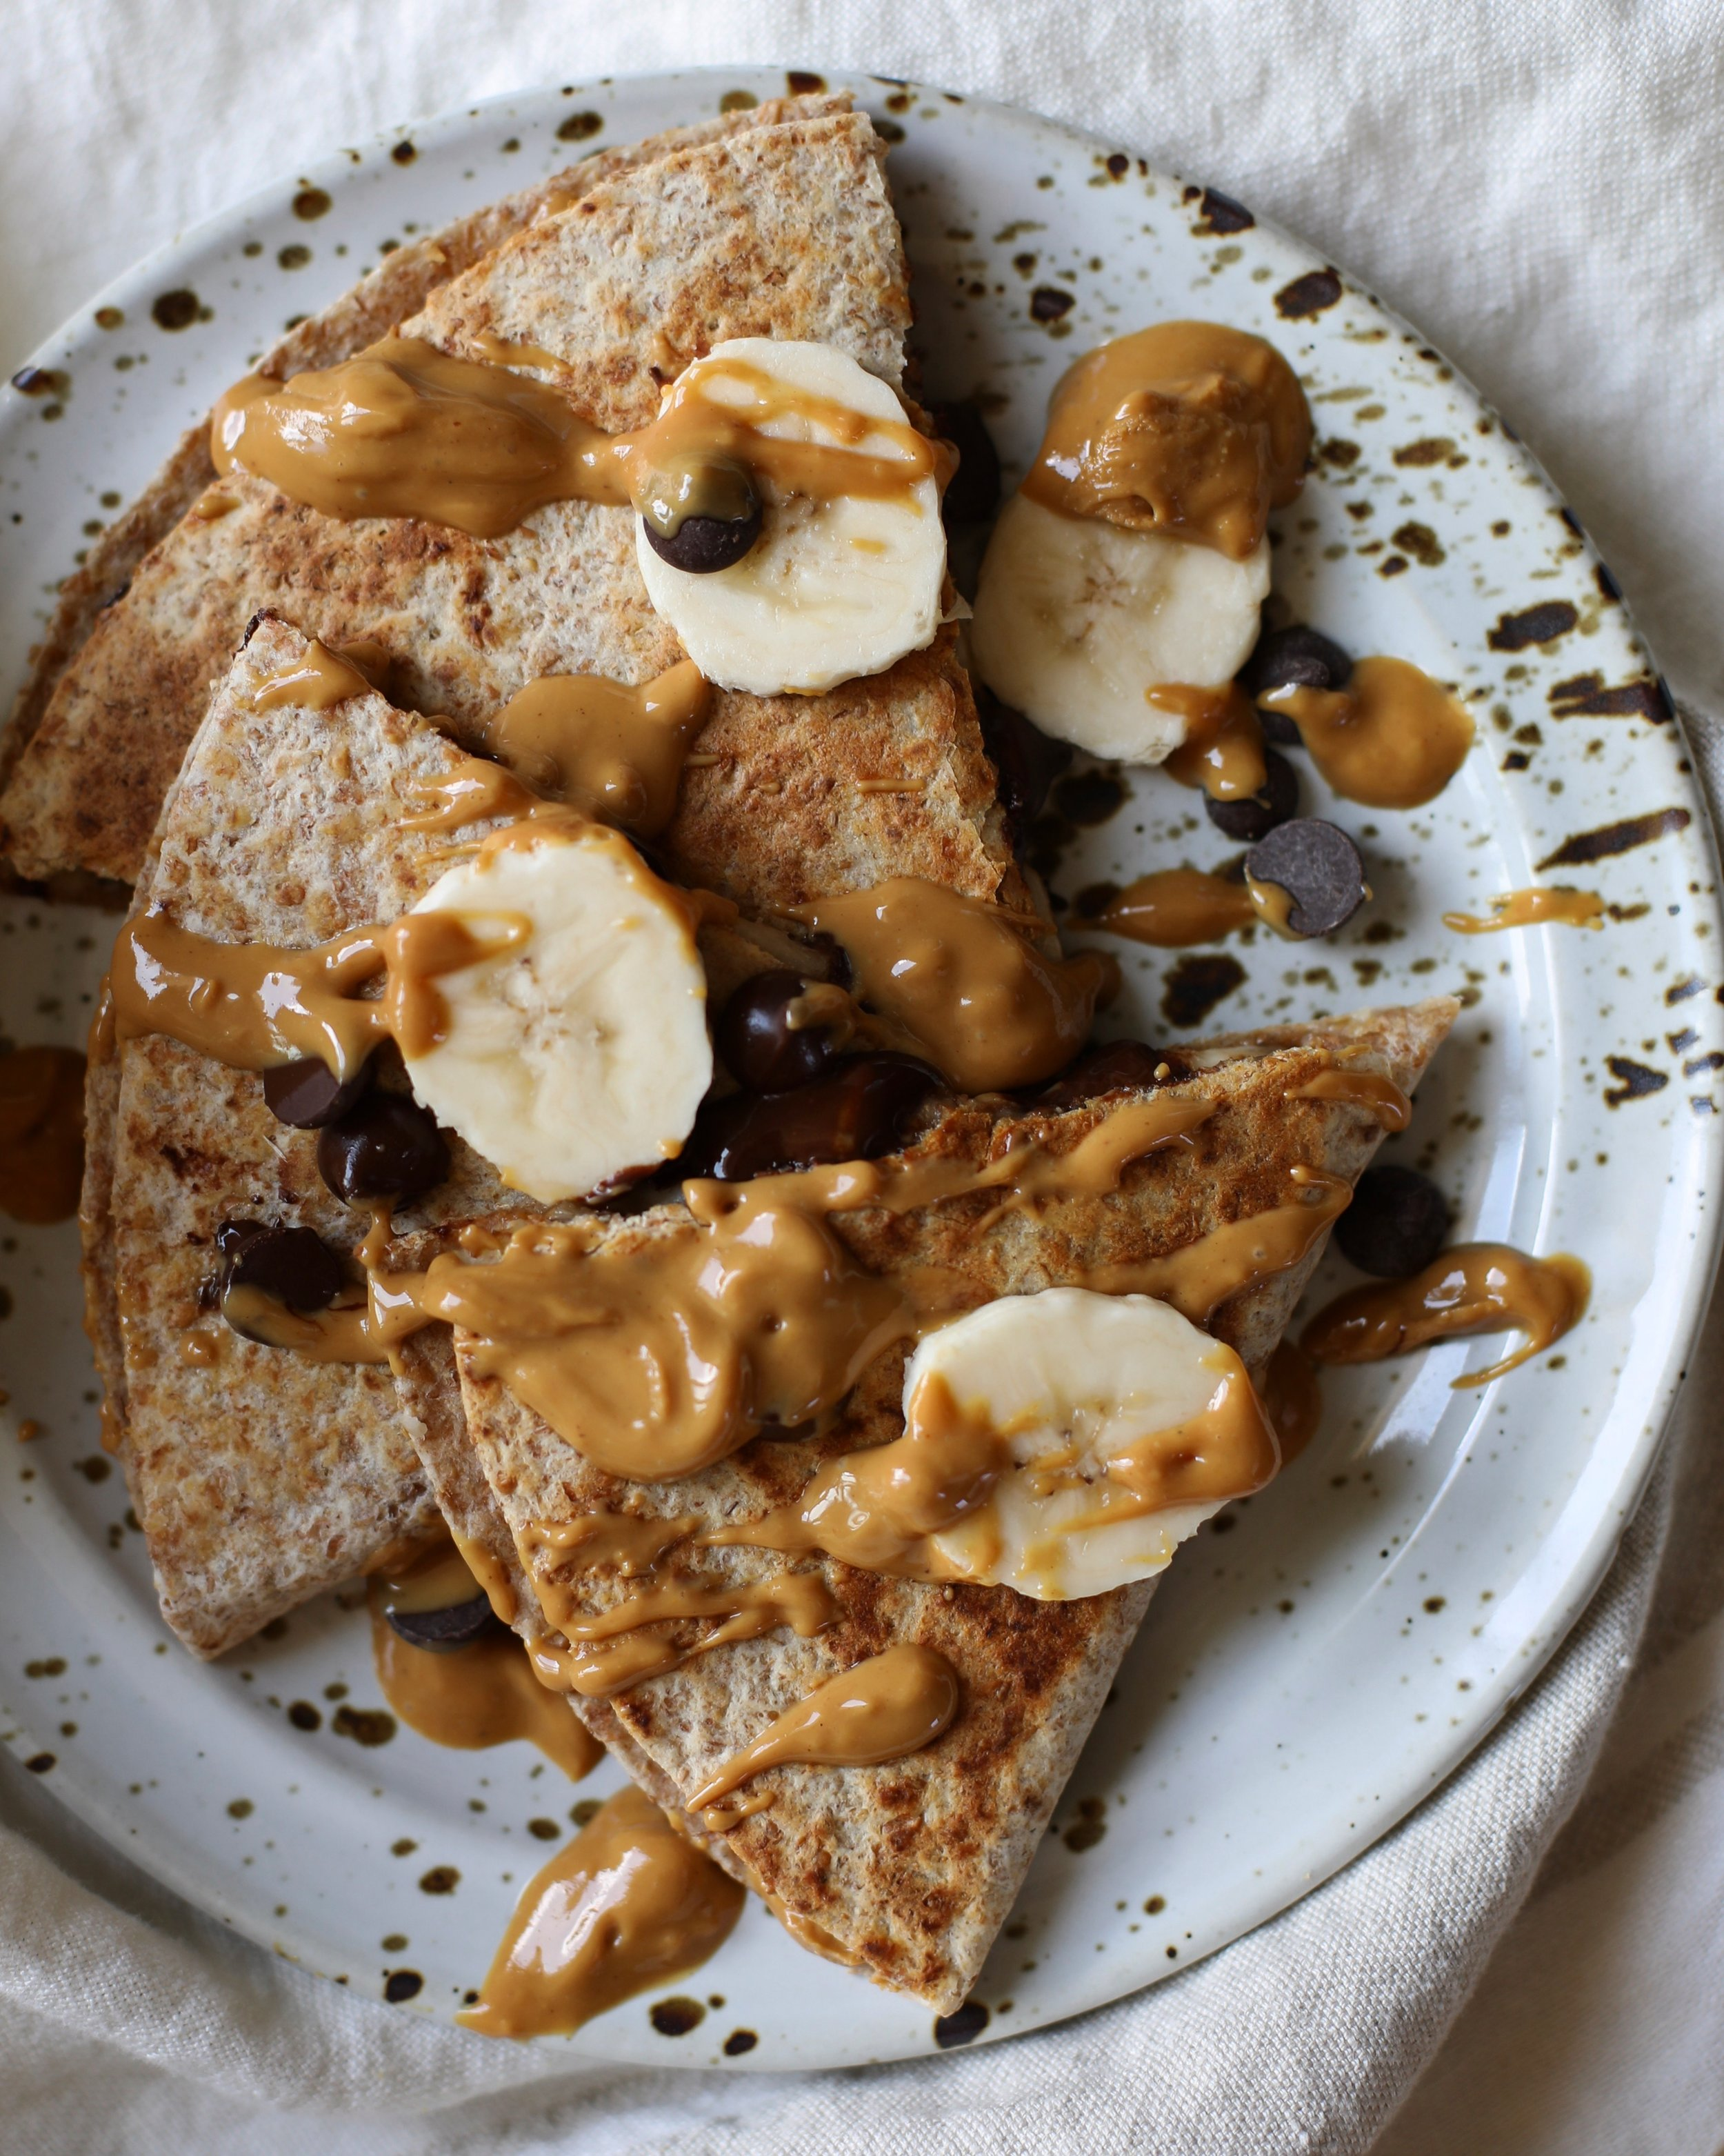 PEANUT BUTTER CHOCOLATE CHIP QUESADILLAS - INGREDIENTS2 sprouted whole grain tortillas 2 tablespoons creamy peanut butter1 banana2-3 tablespoons dairy free chocolate chips